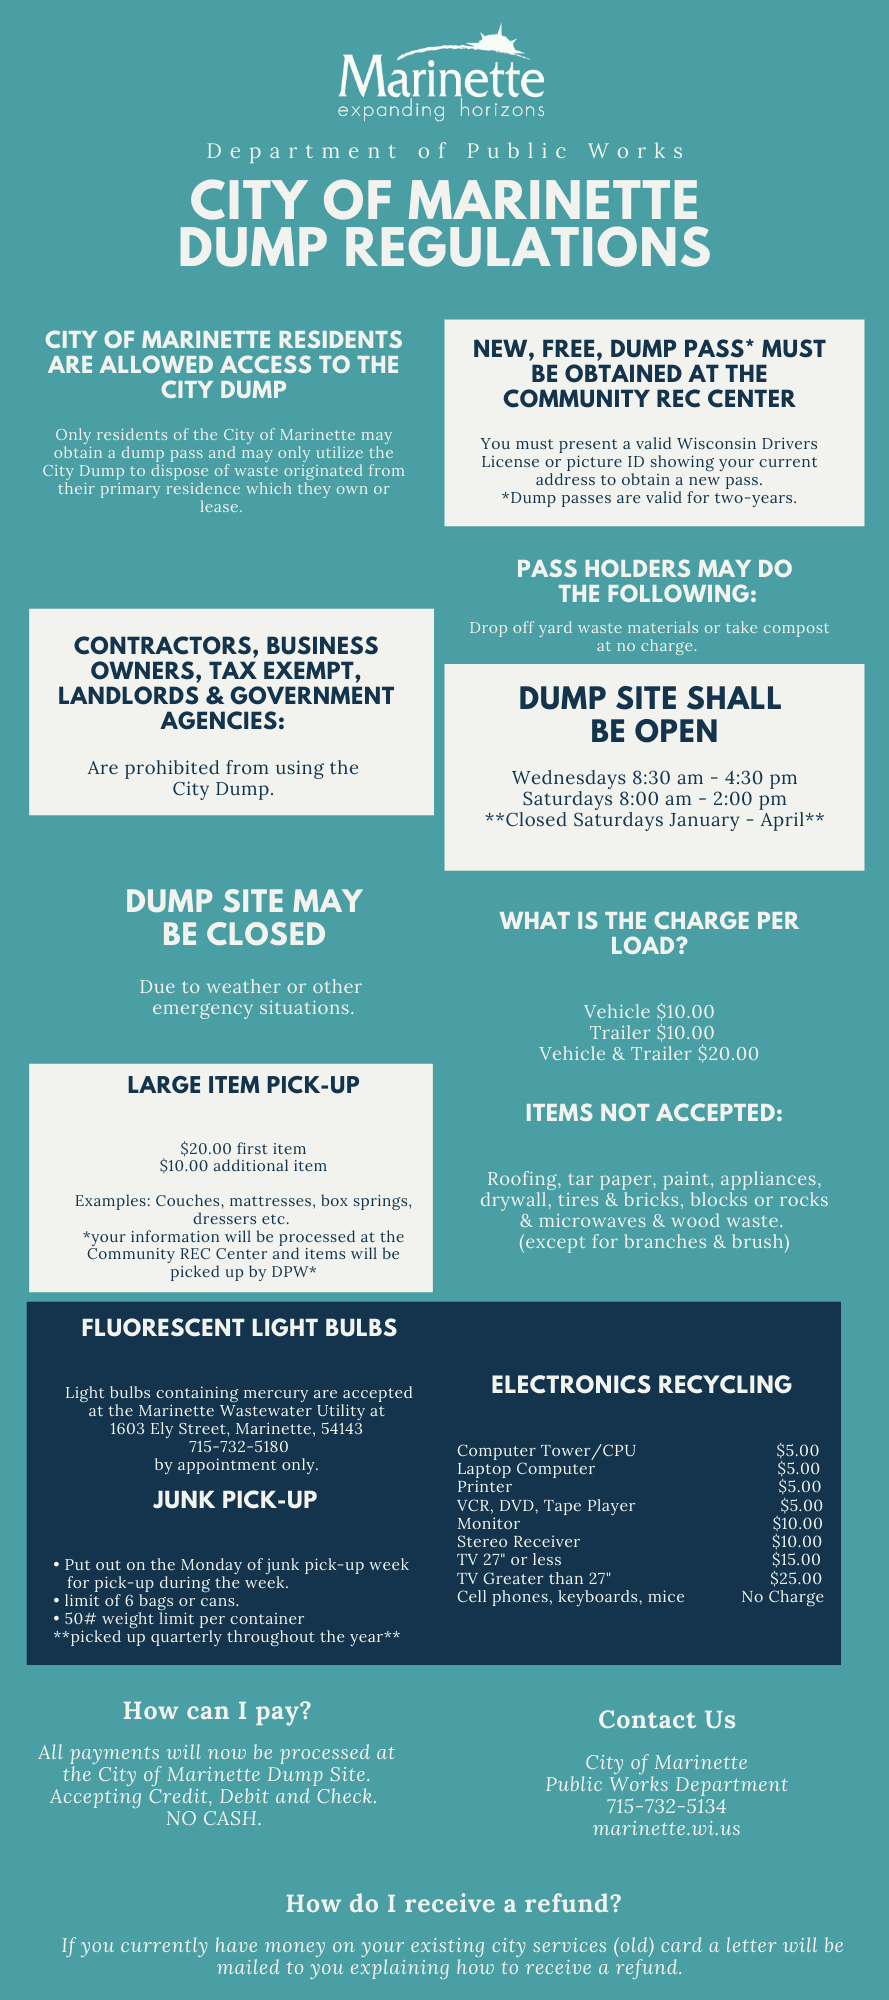 UPDATED DUMPSITE INFOGRAPHIC